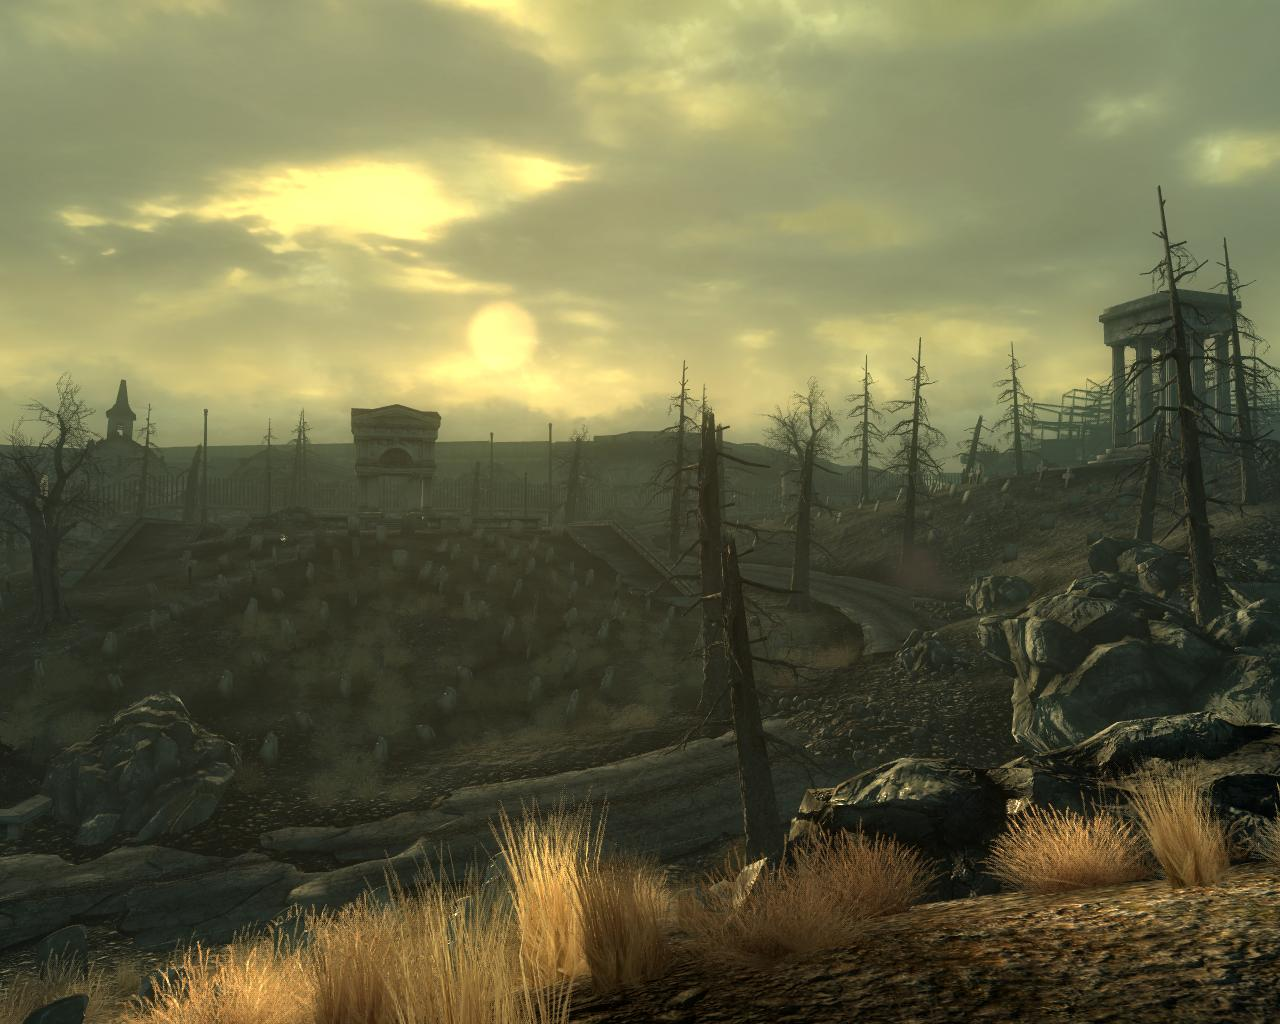 In fallout 3 if charon s can u get him again? - Yahoo!7 Answers